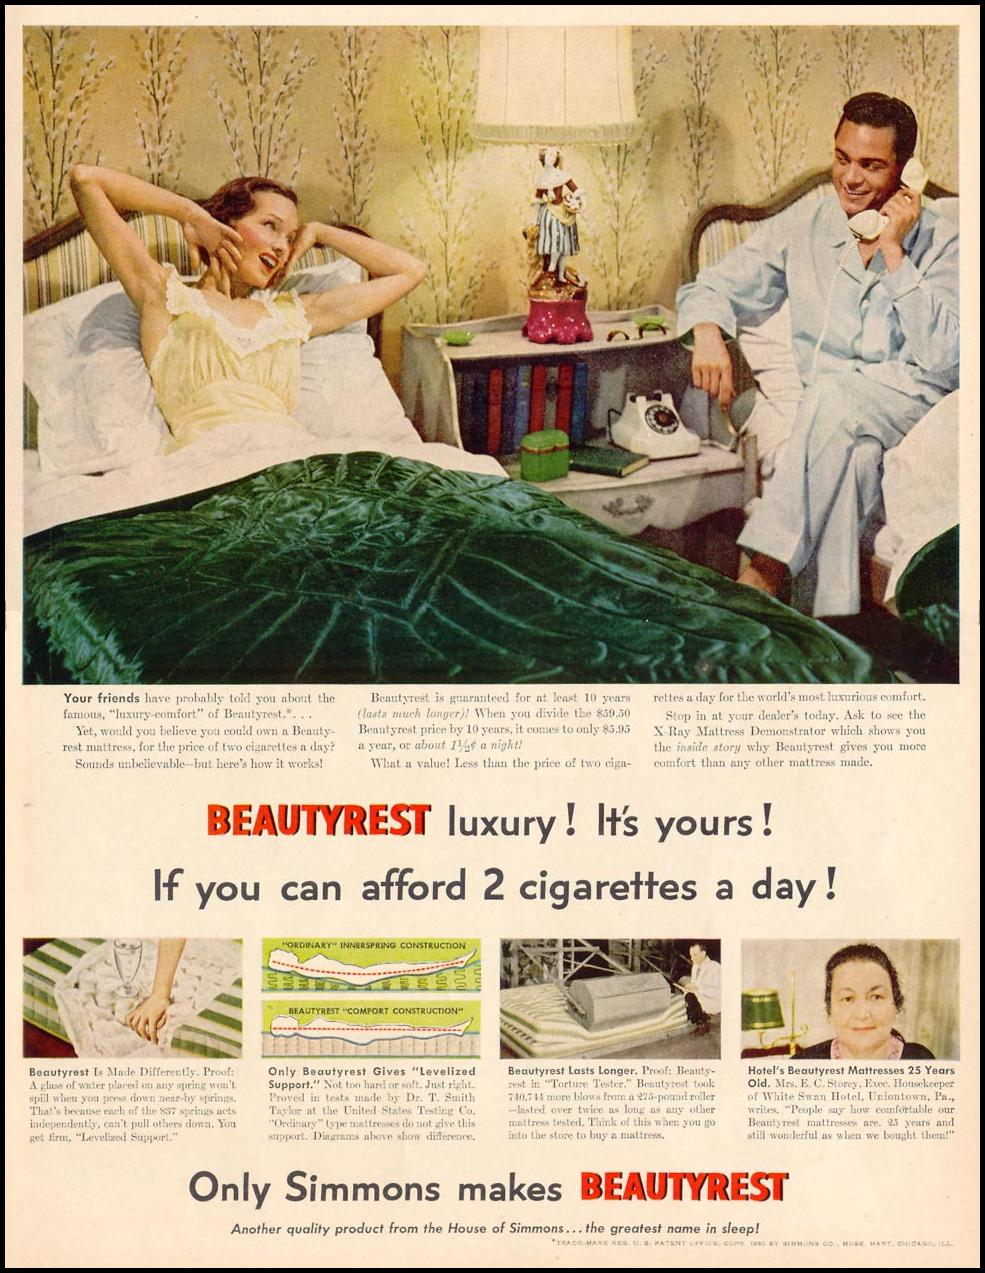 SIMMONS BEAUTYREST MATTRESS LIFE 06/05/1950 p. 87